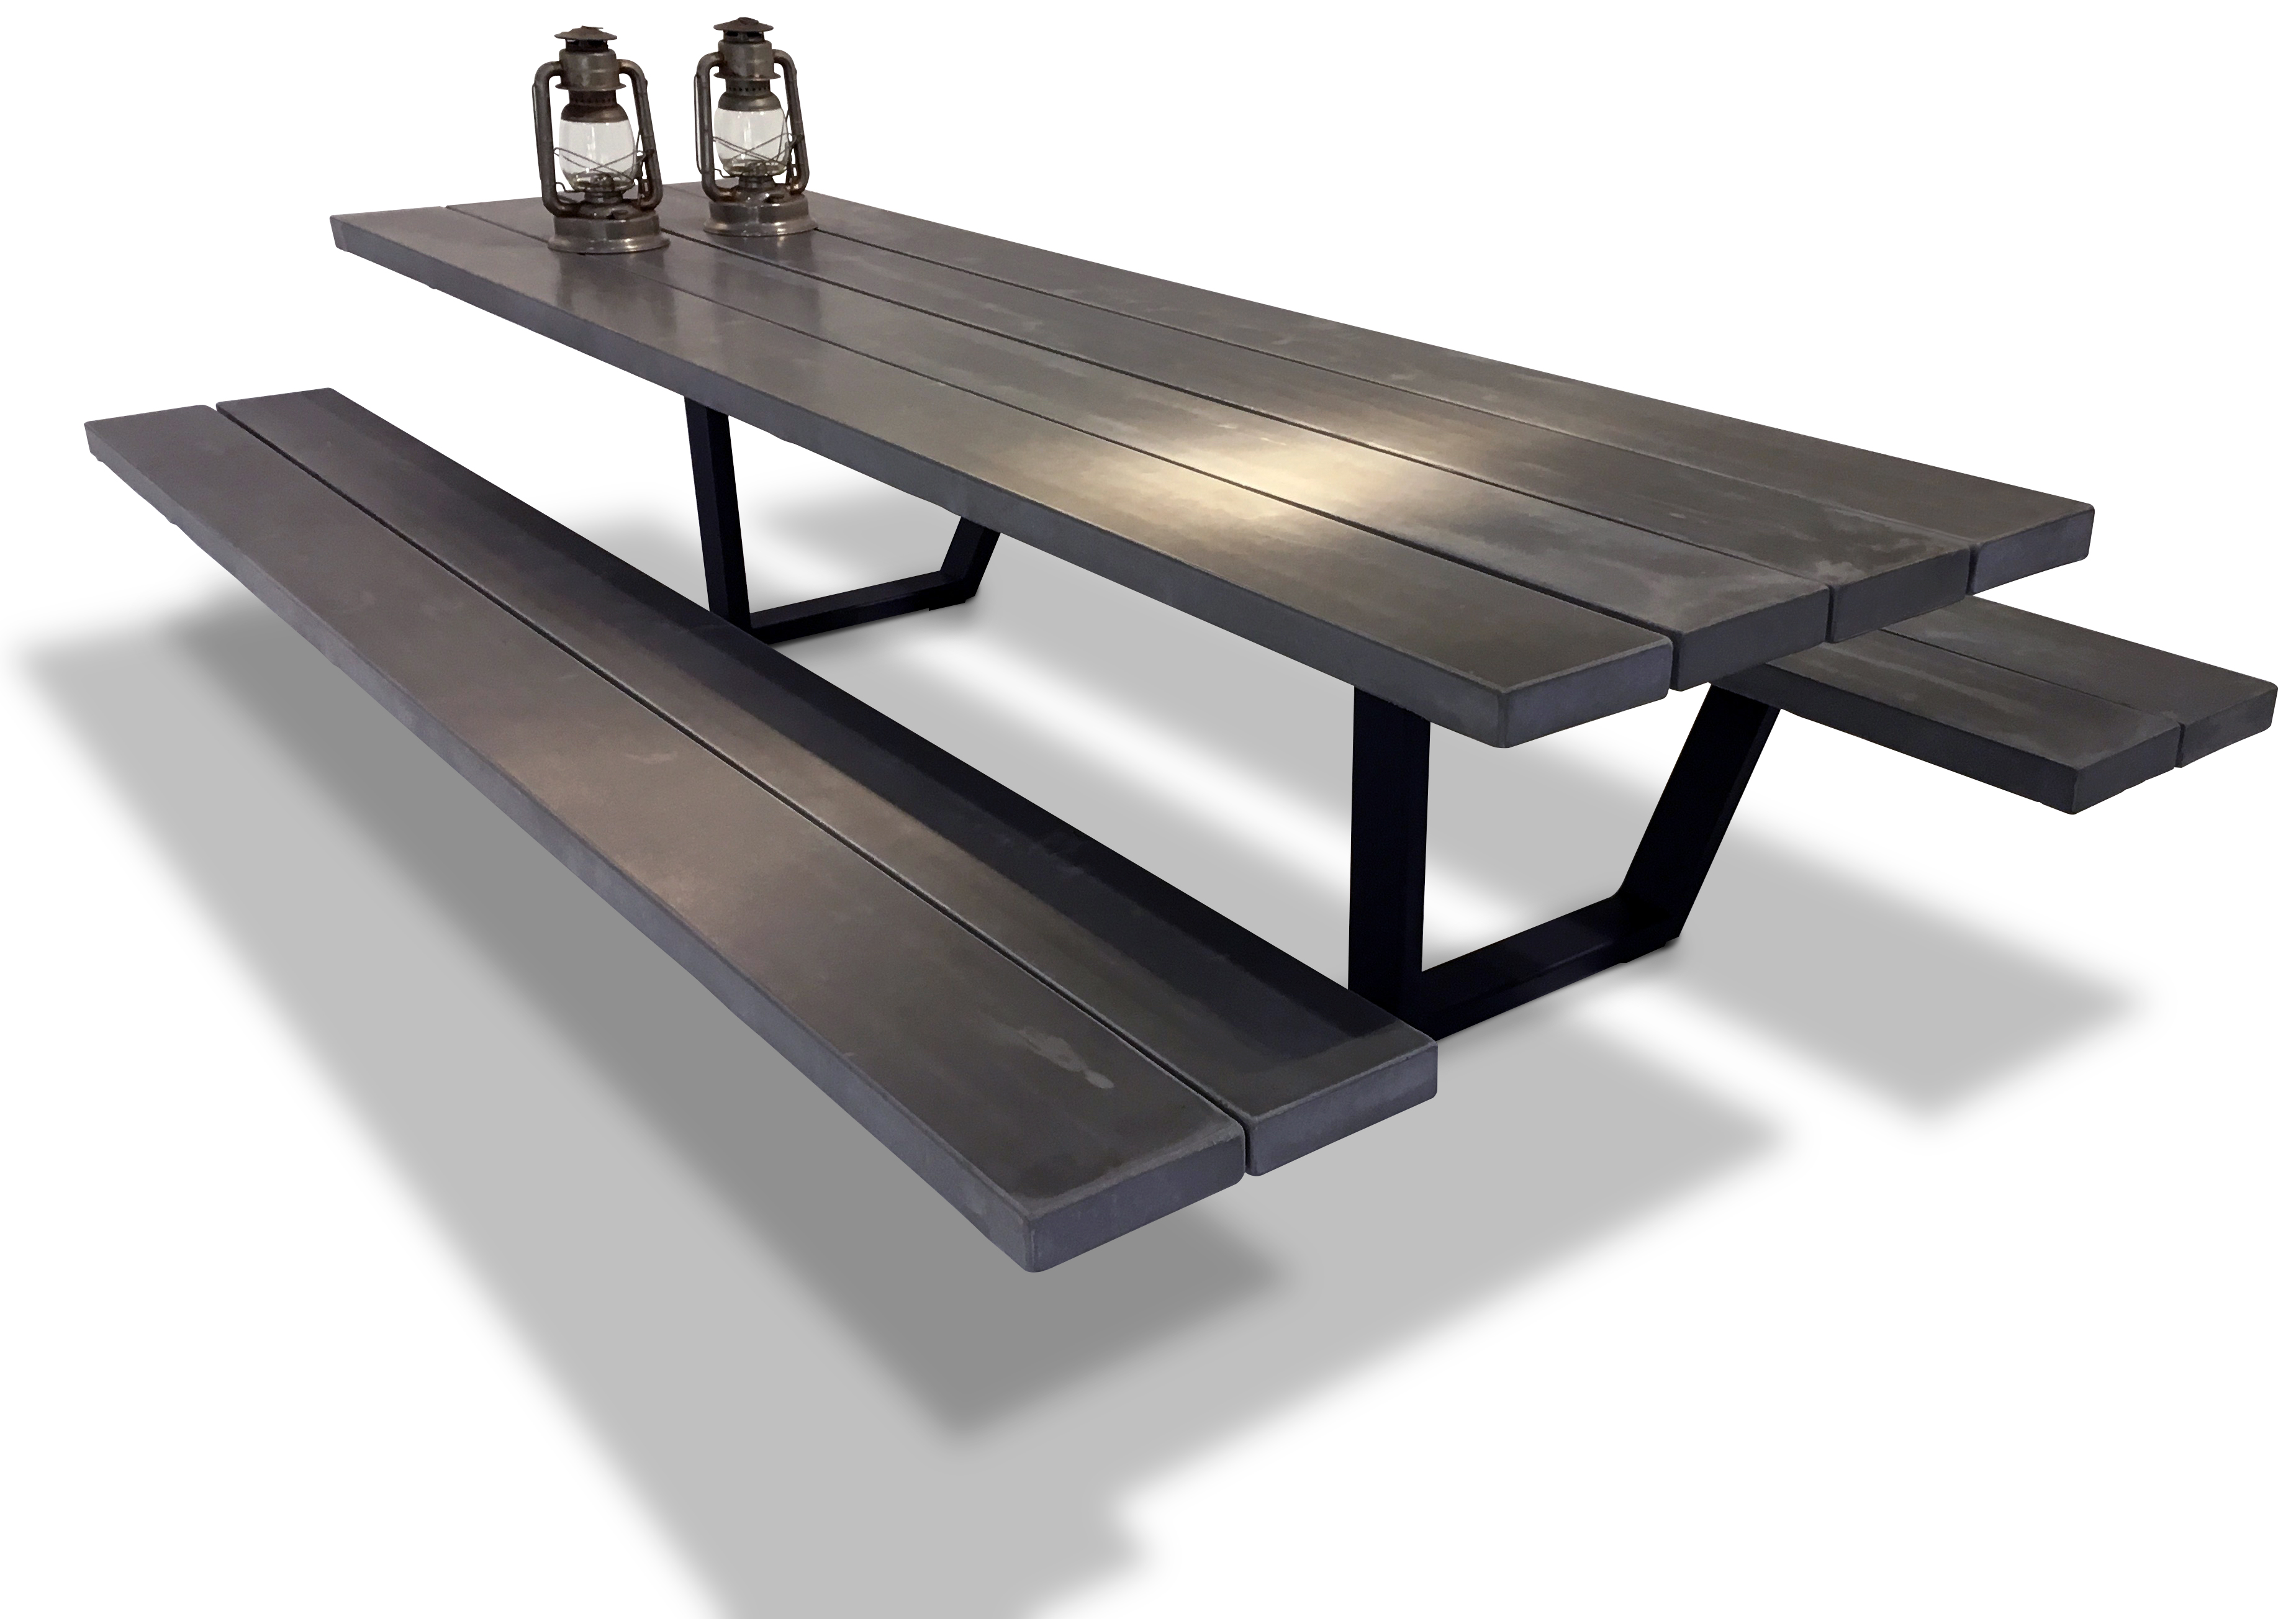 Cassecroute table concrete picnic table cassecroute for Table exterieur acier